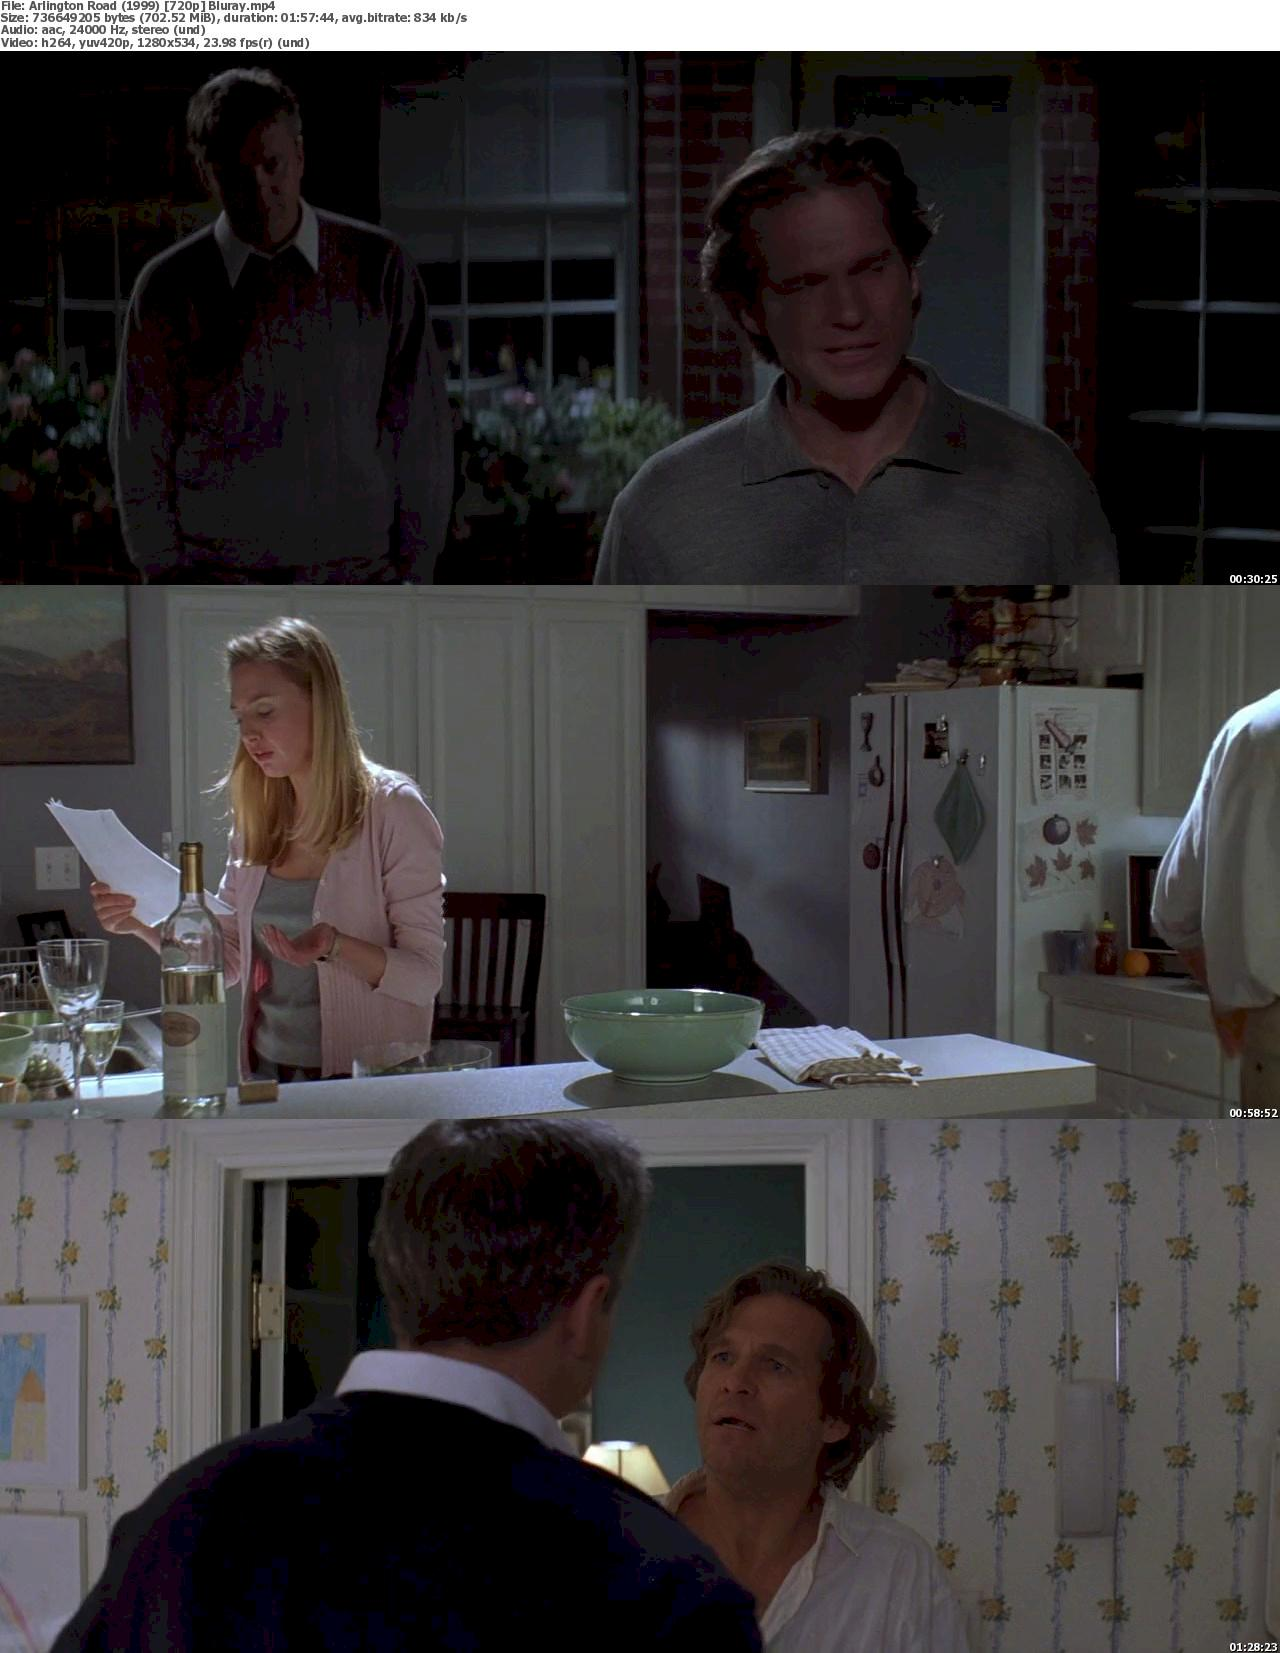 Arlington Road (1999) 720p Bluray Free Download 720p Screenshot